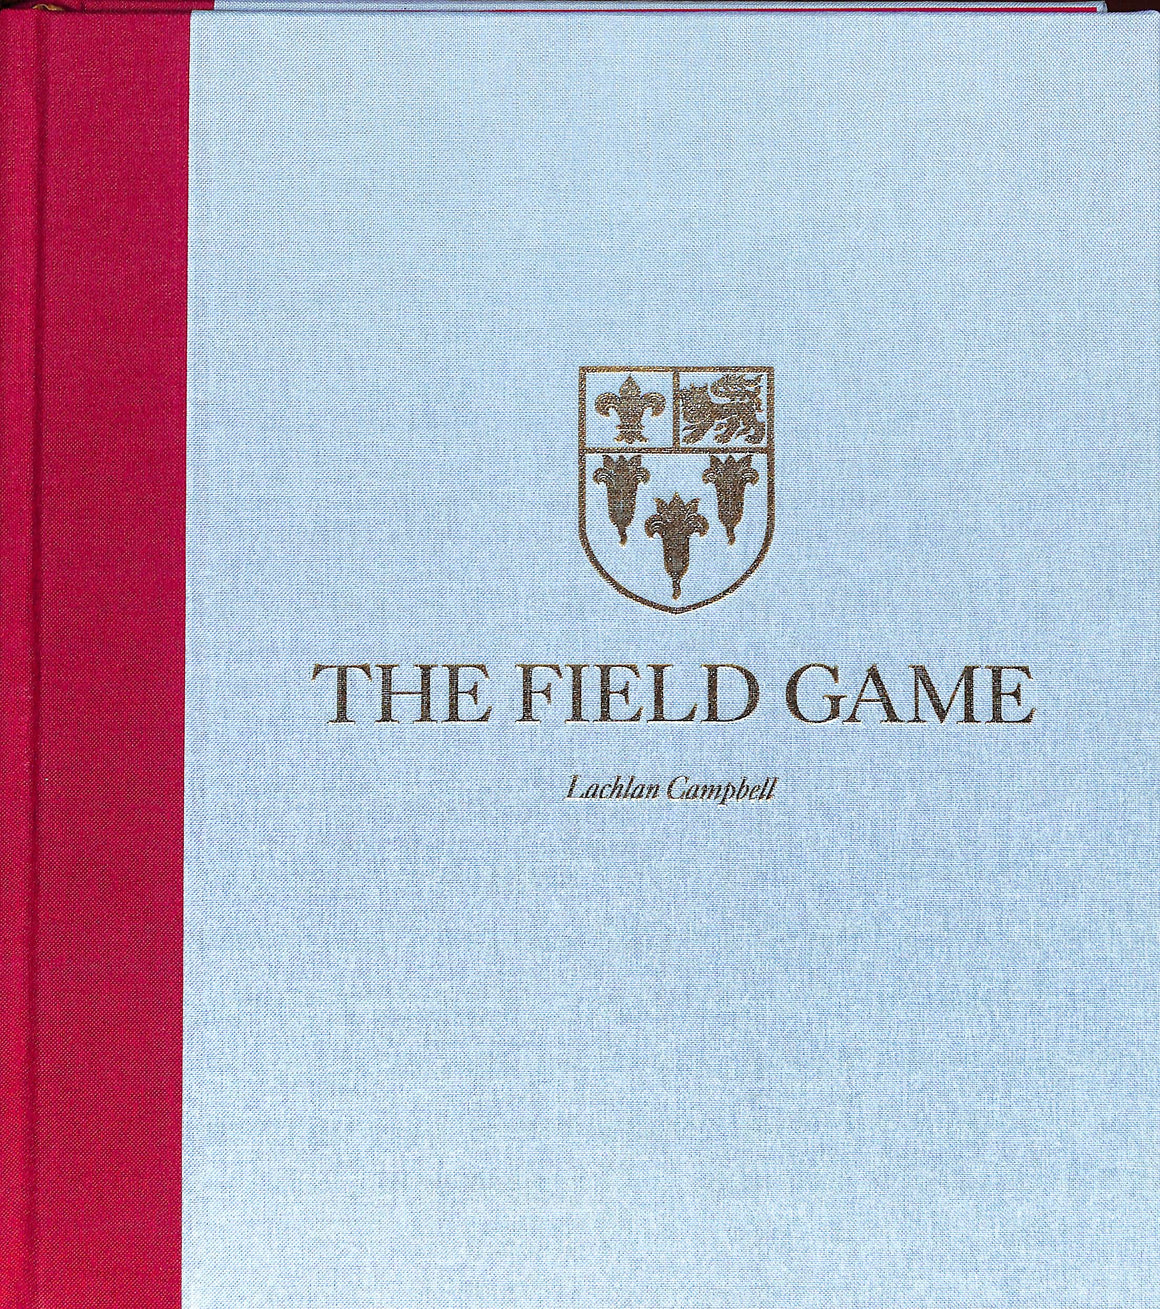 The Field Game by Lachlan Campbell